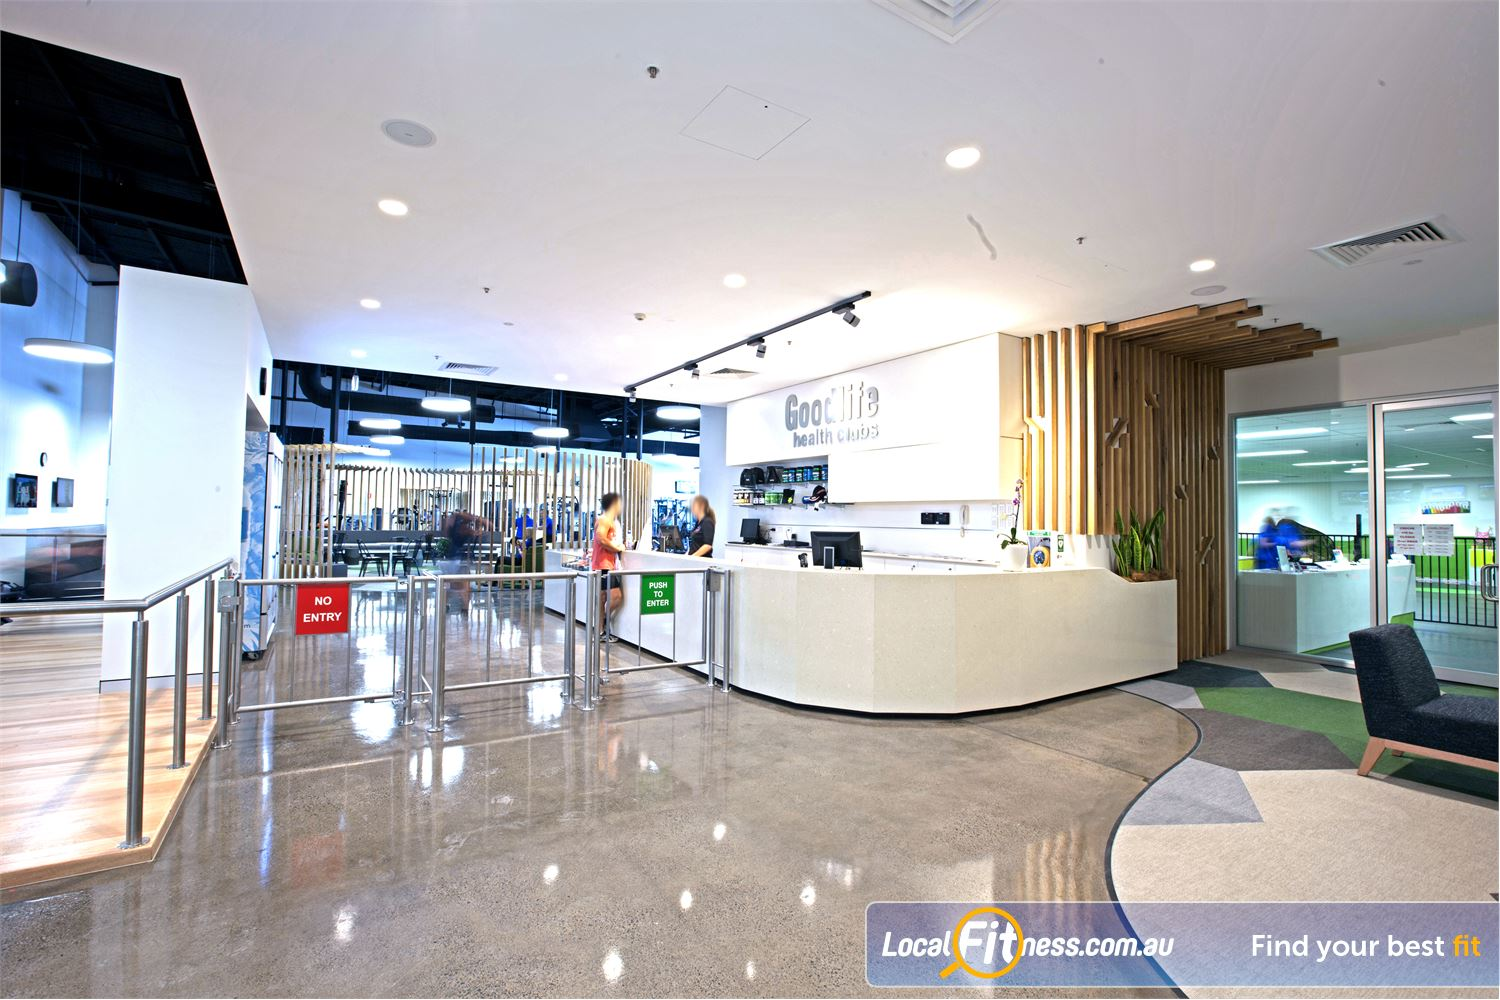 Goodlife Health Clubs Maroochydore Meet our friendly Goodlife team who will take care of your every need.